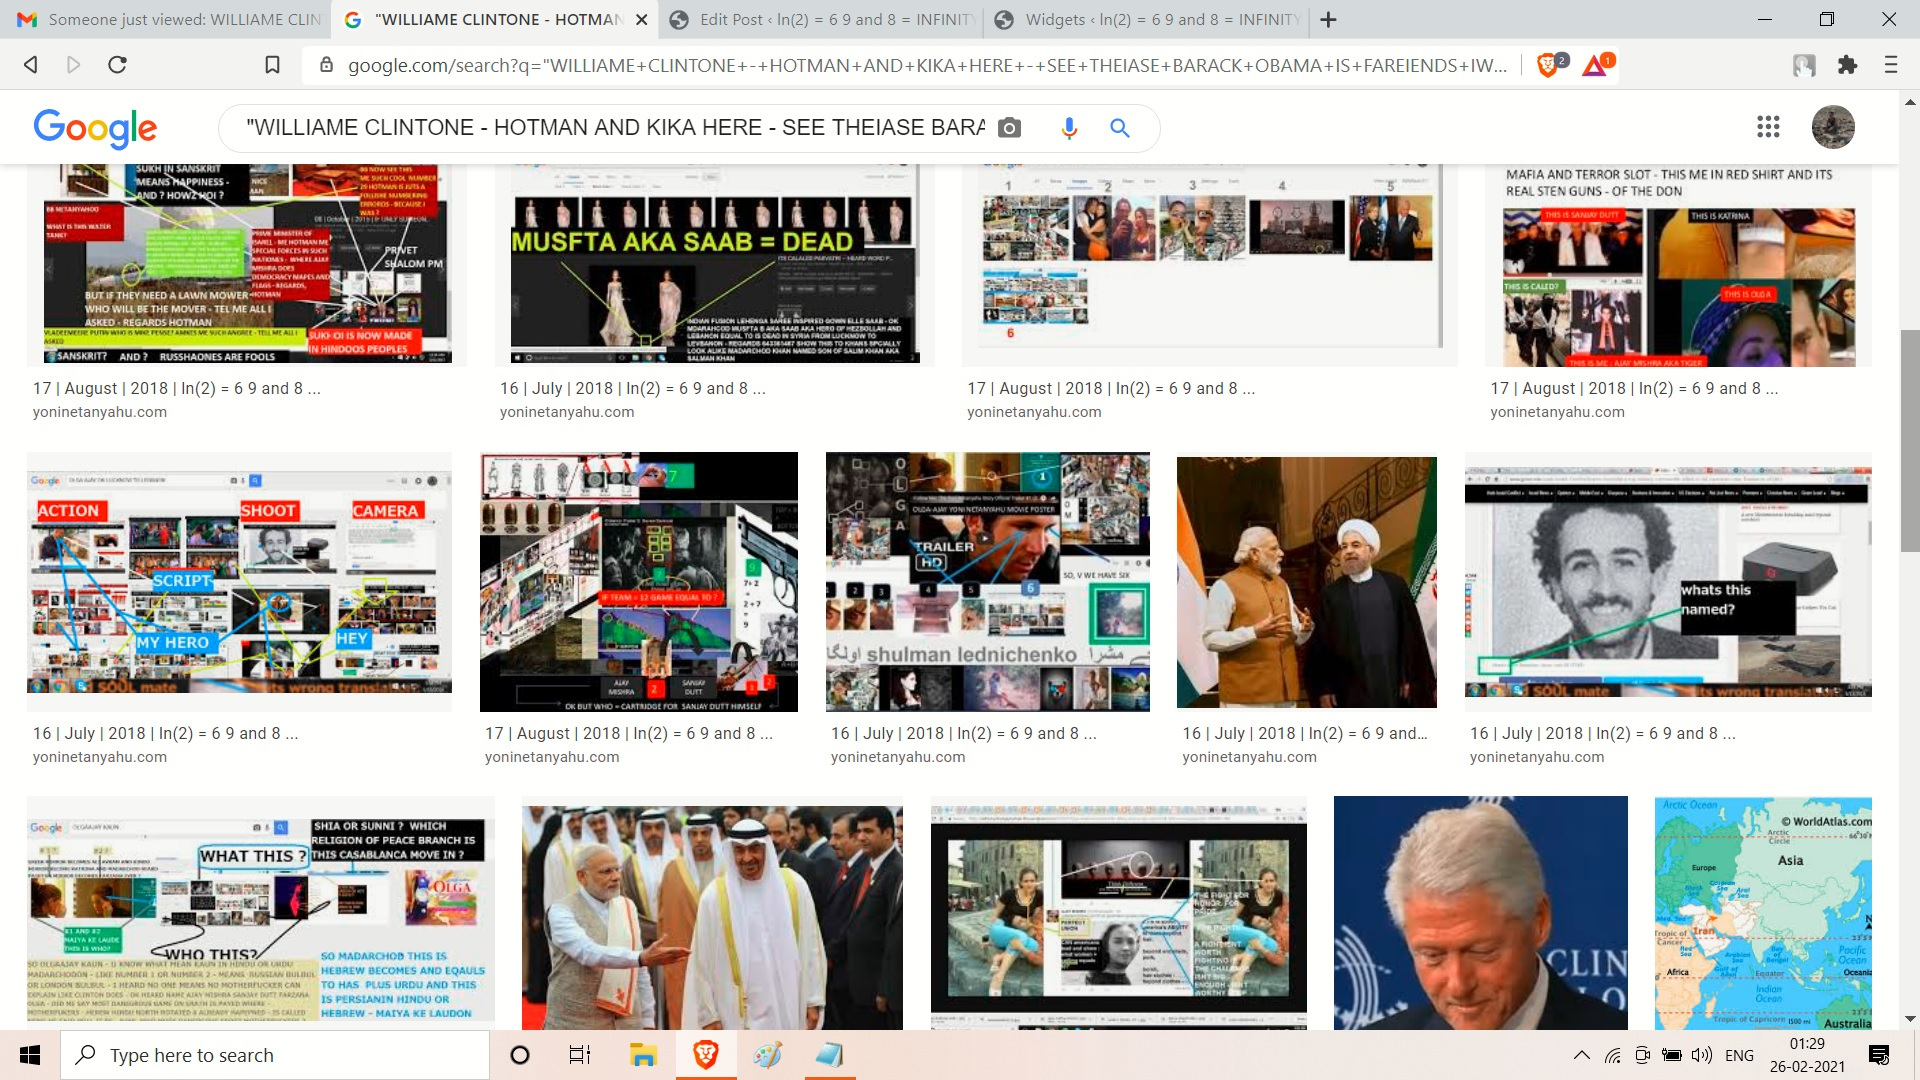 POPE FRANCIS AND BAARCK OBAMA DN MAFIA AND OLGA AND WILLIAME CLINTON AND HOTMAN AND WHO